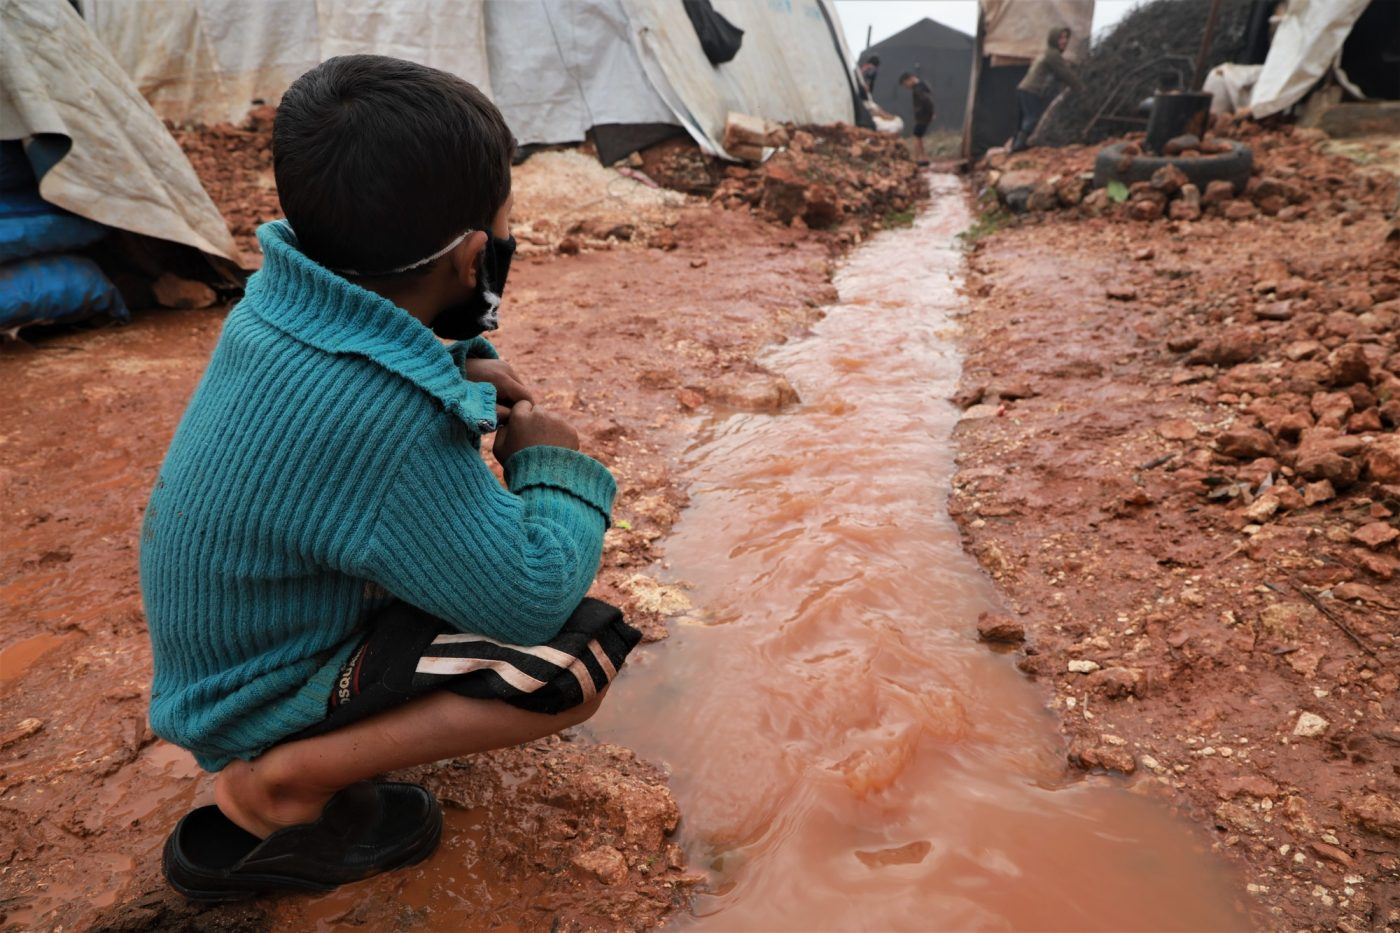 A boy looks at a water channel through a camp for displaced people in north-western Syria